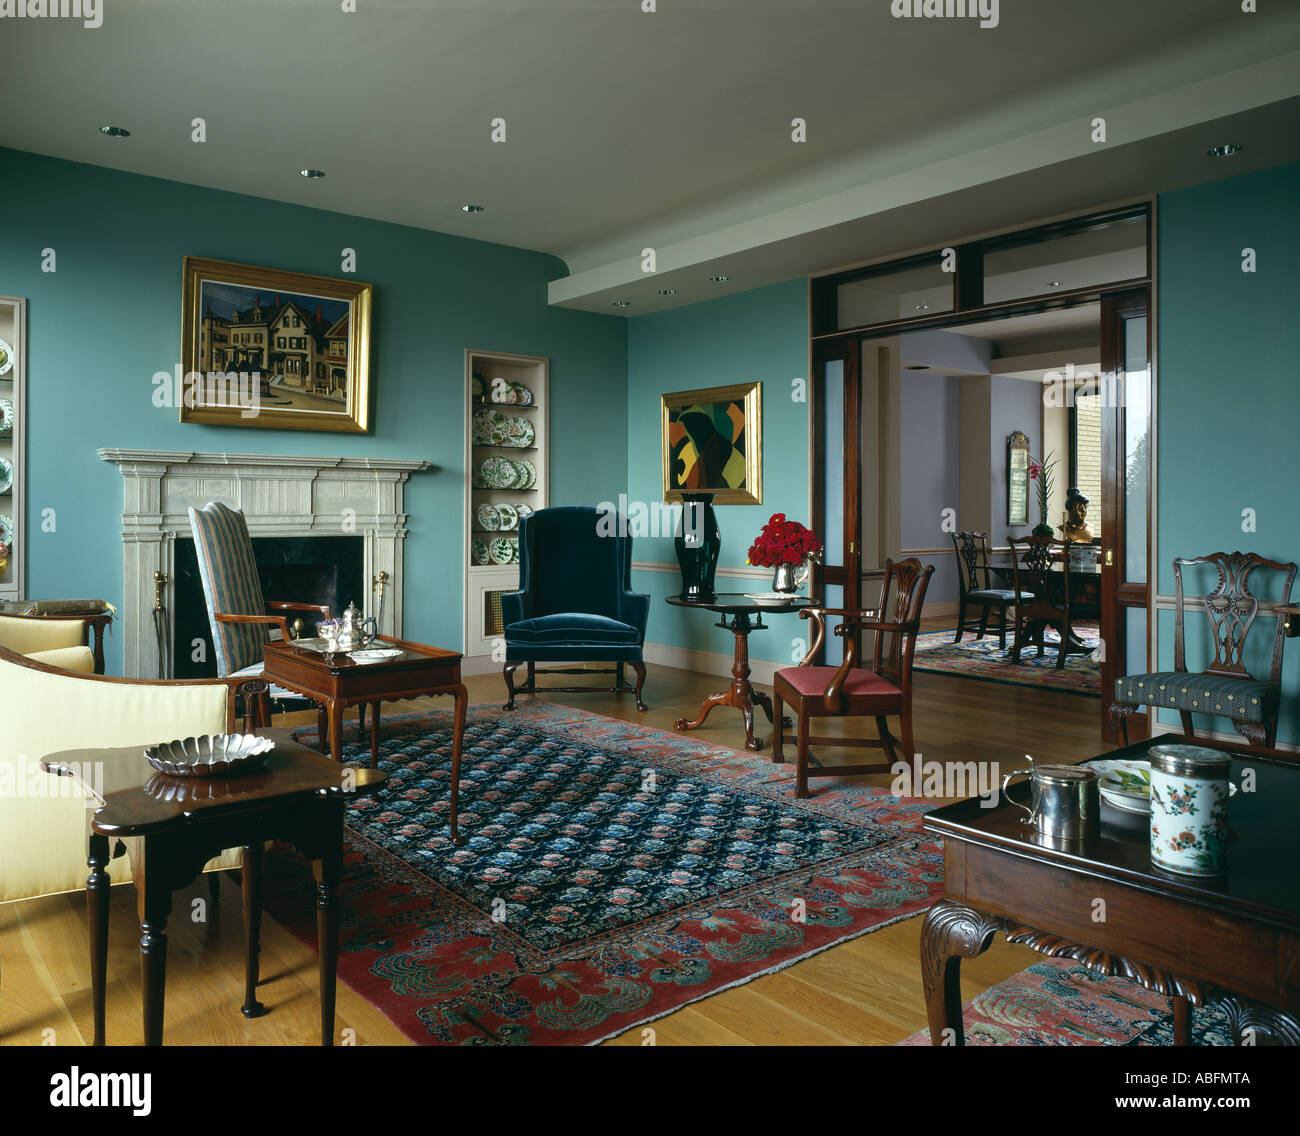 Steinberg Apartment, New York. Living Room With Chippendale Furniture And  Khorasan Carpets. Architect: Gwathmey Siegel